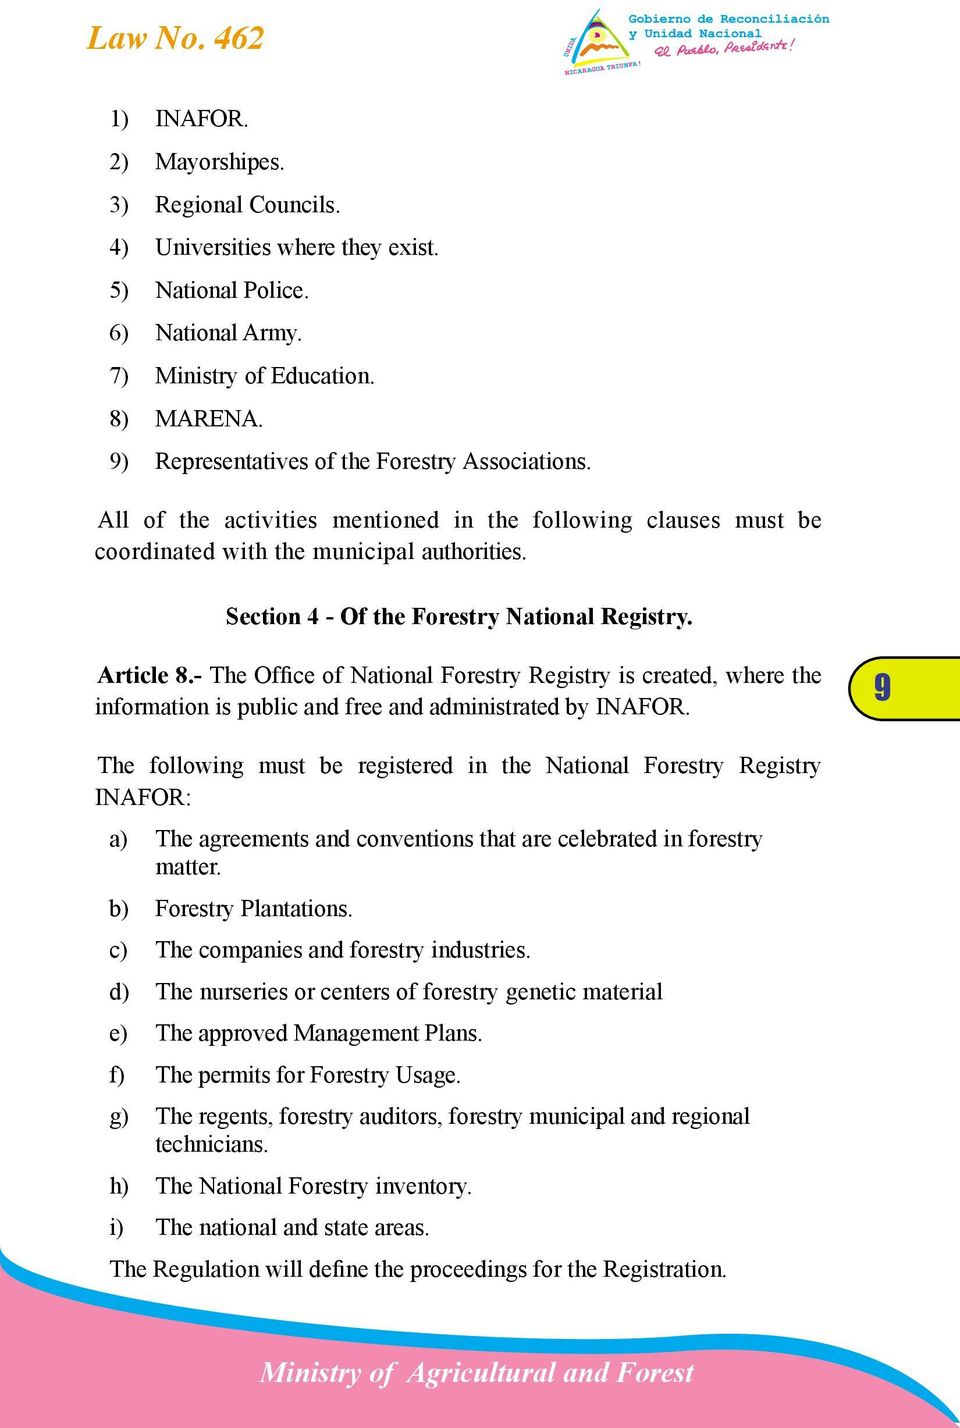 Section 4 - Of the Forestry National Registry. Article 8.- The Office of National Forestry Registry is created, where the information is public and free and administrated by INAFOR.